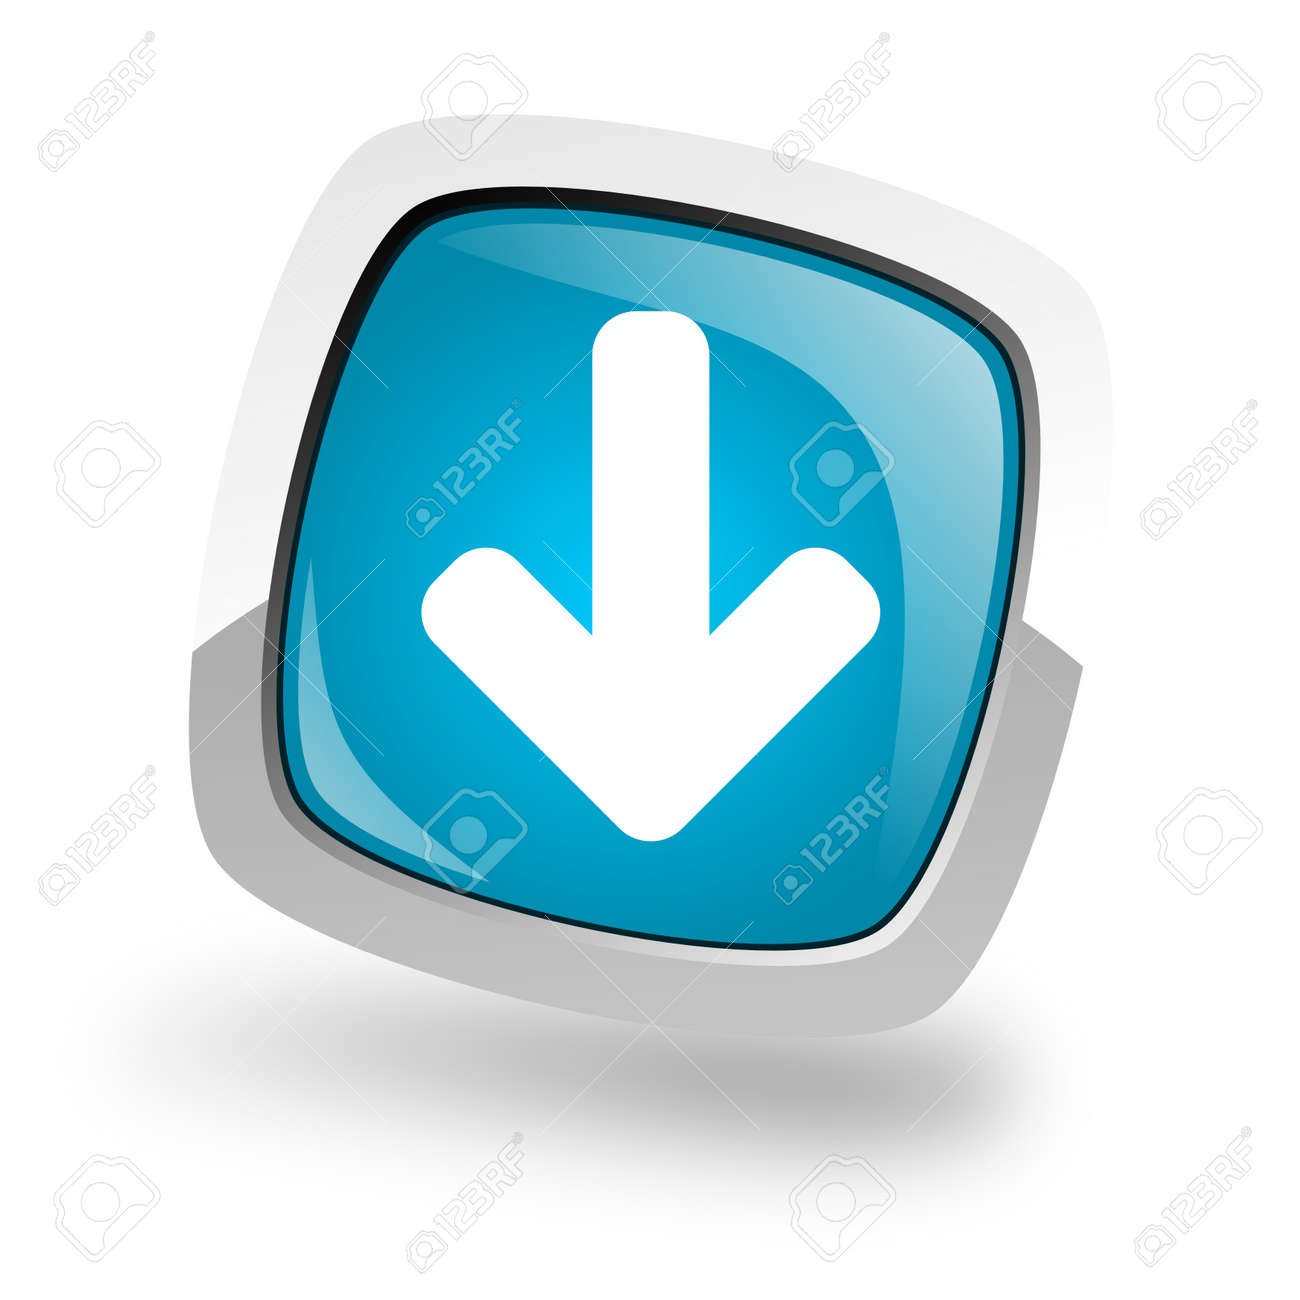 download icon Stock Photo - 12920346